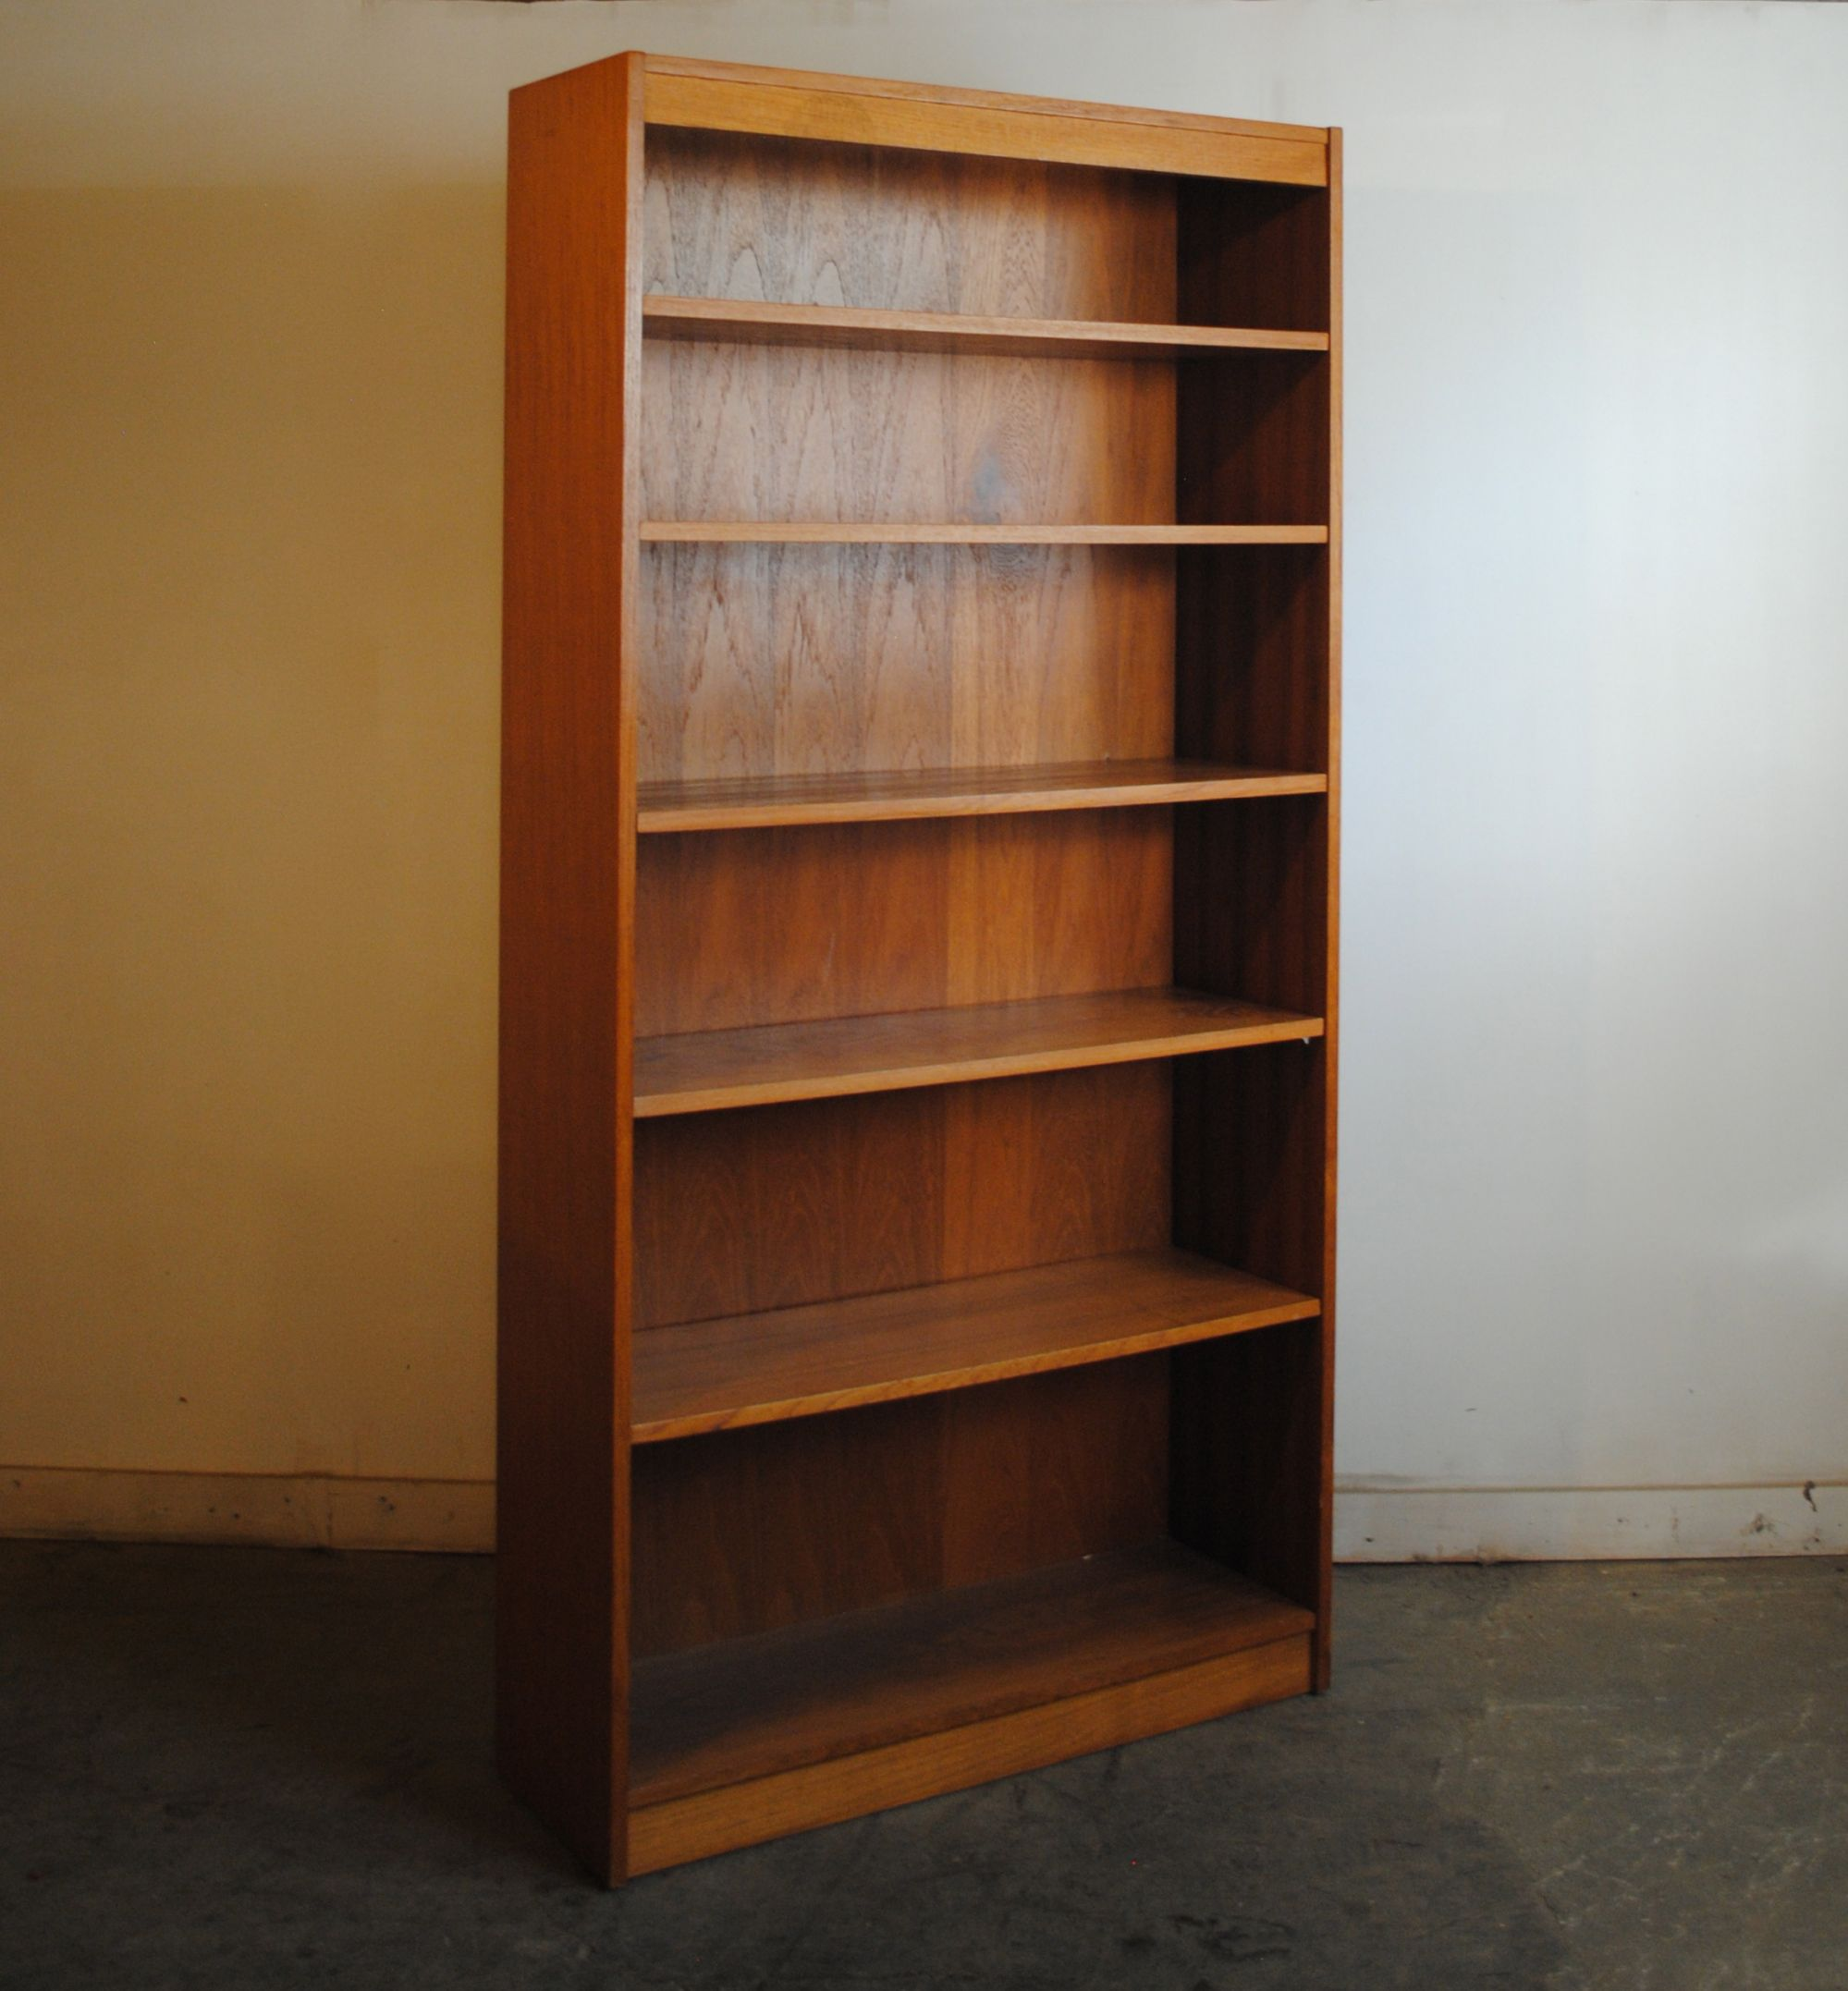 Teak Bookcases Danish Cool Storage Furniture Check More At Http Fiveinchfloppy